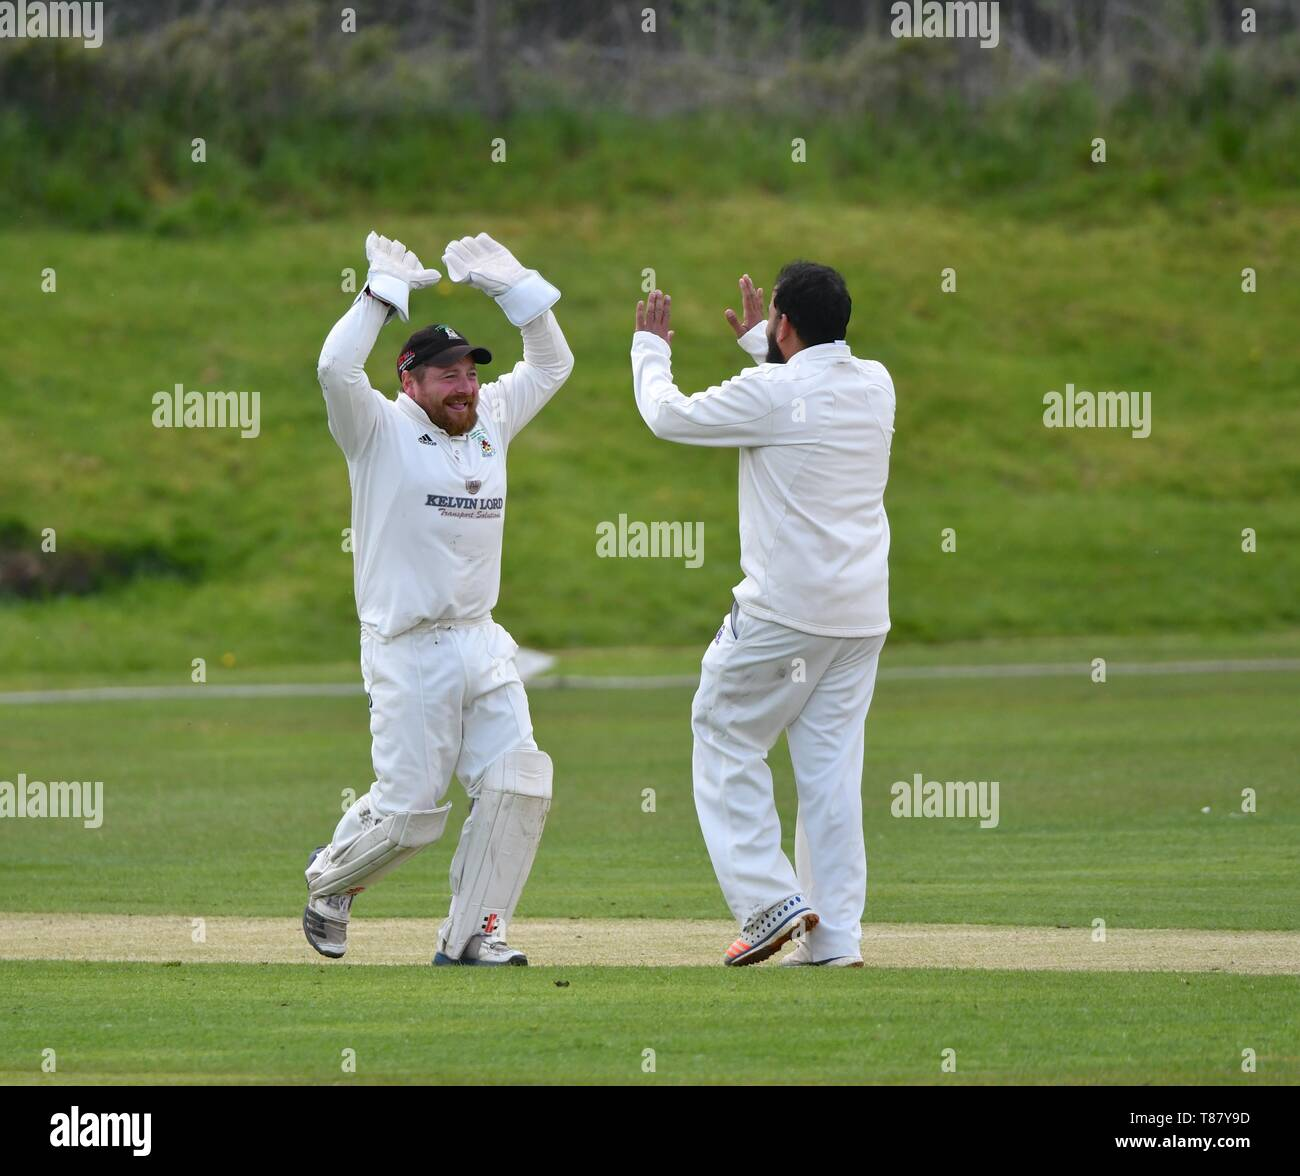 Wicket keeper celebrates a wicket with the bowler  in the match between Glossop and Moorside. - Stock Image